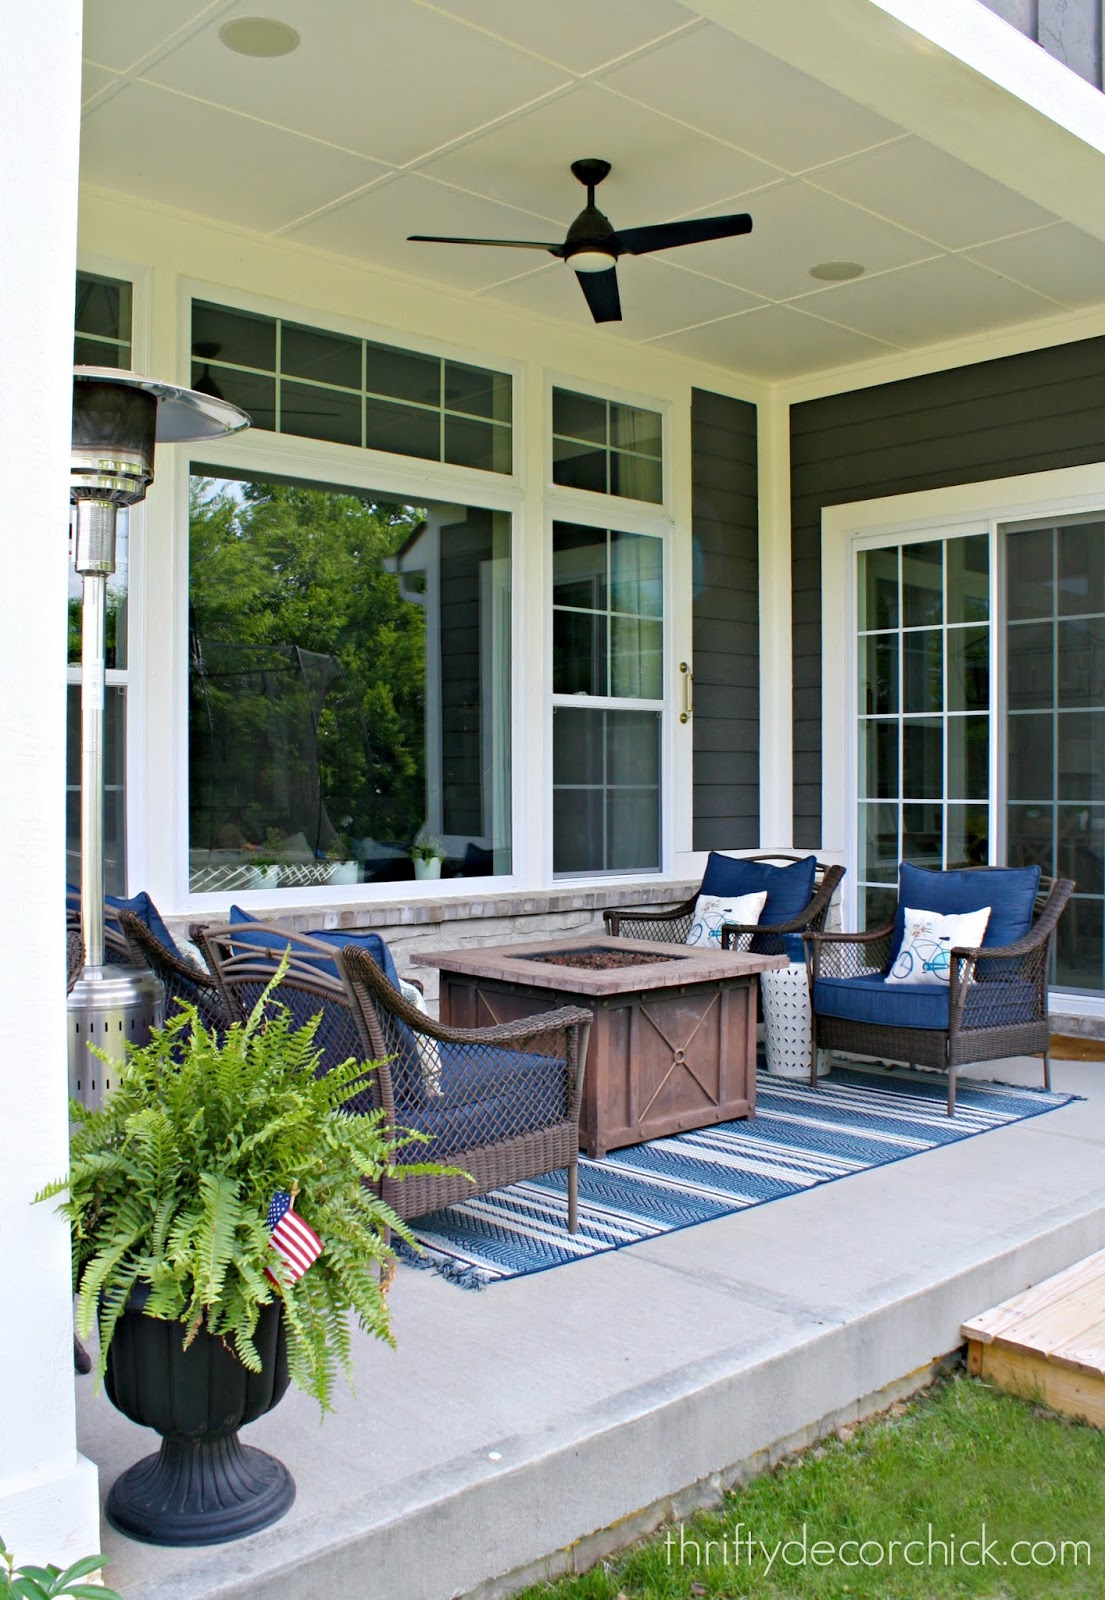 Benefits of covered patio